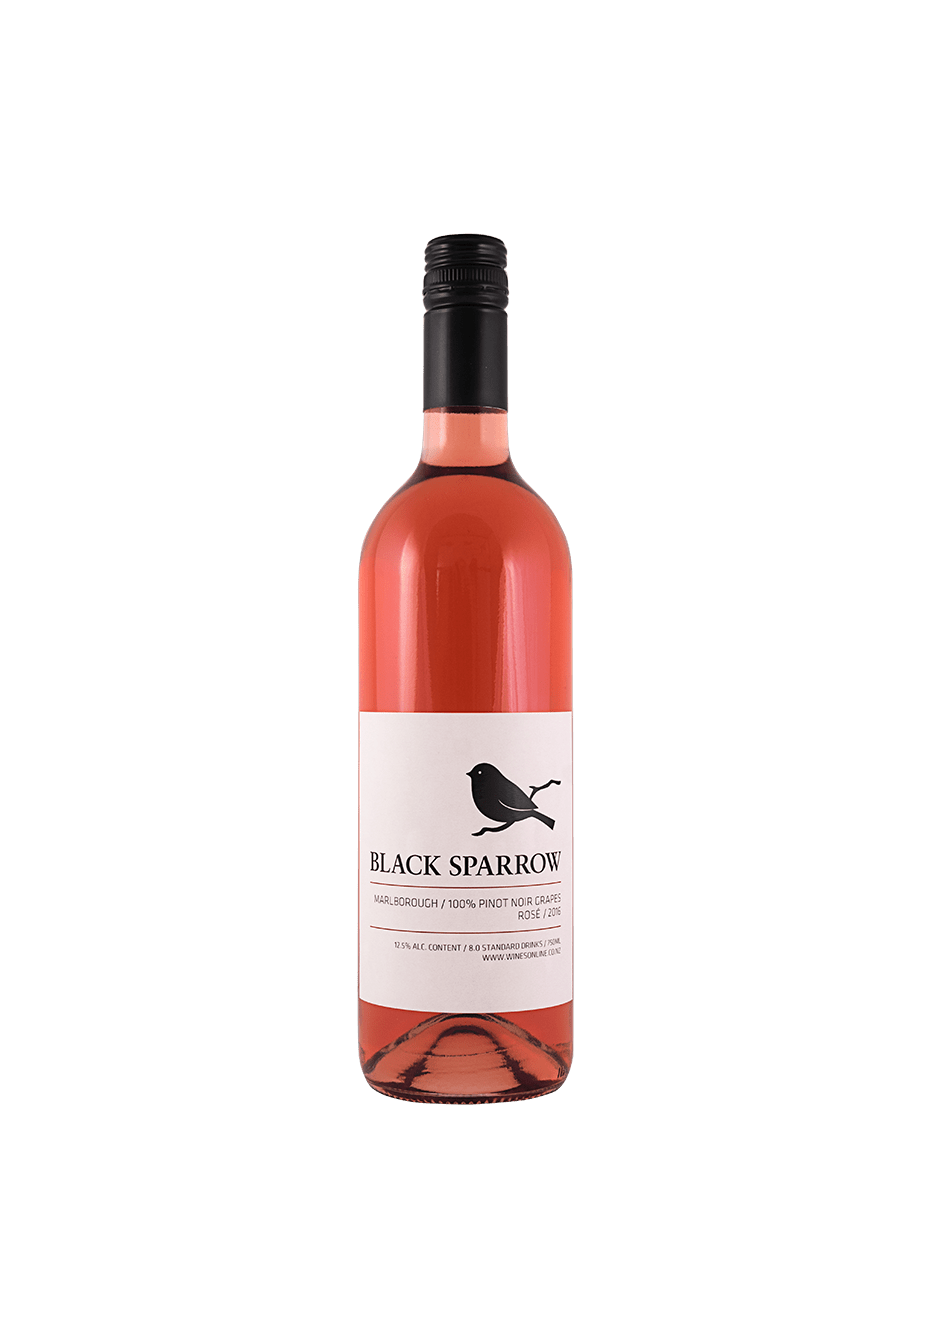 Black Sparrow Marlborough Pinot Noir Rosé 2018